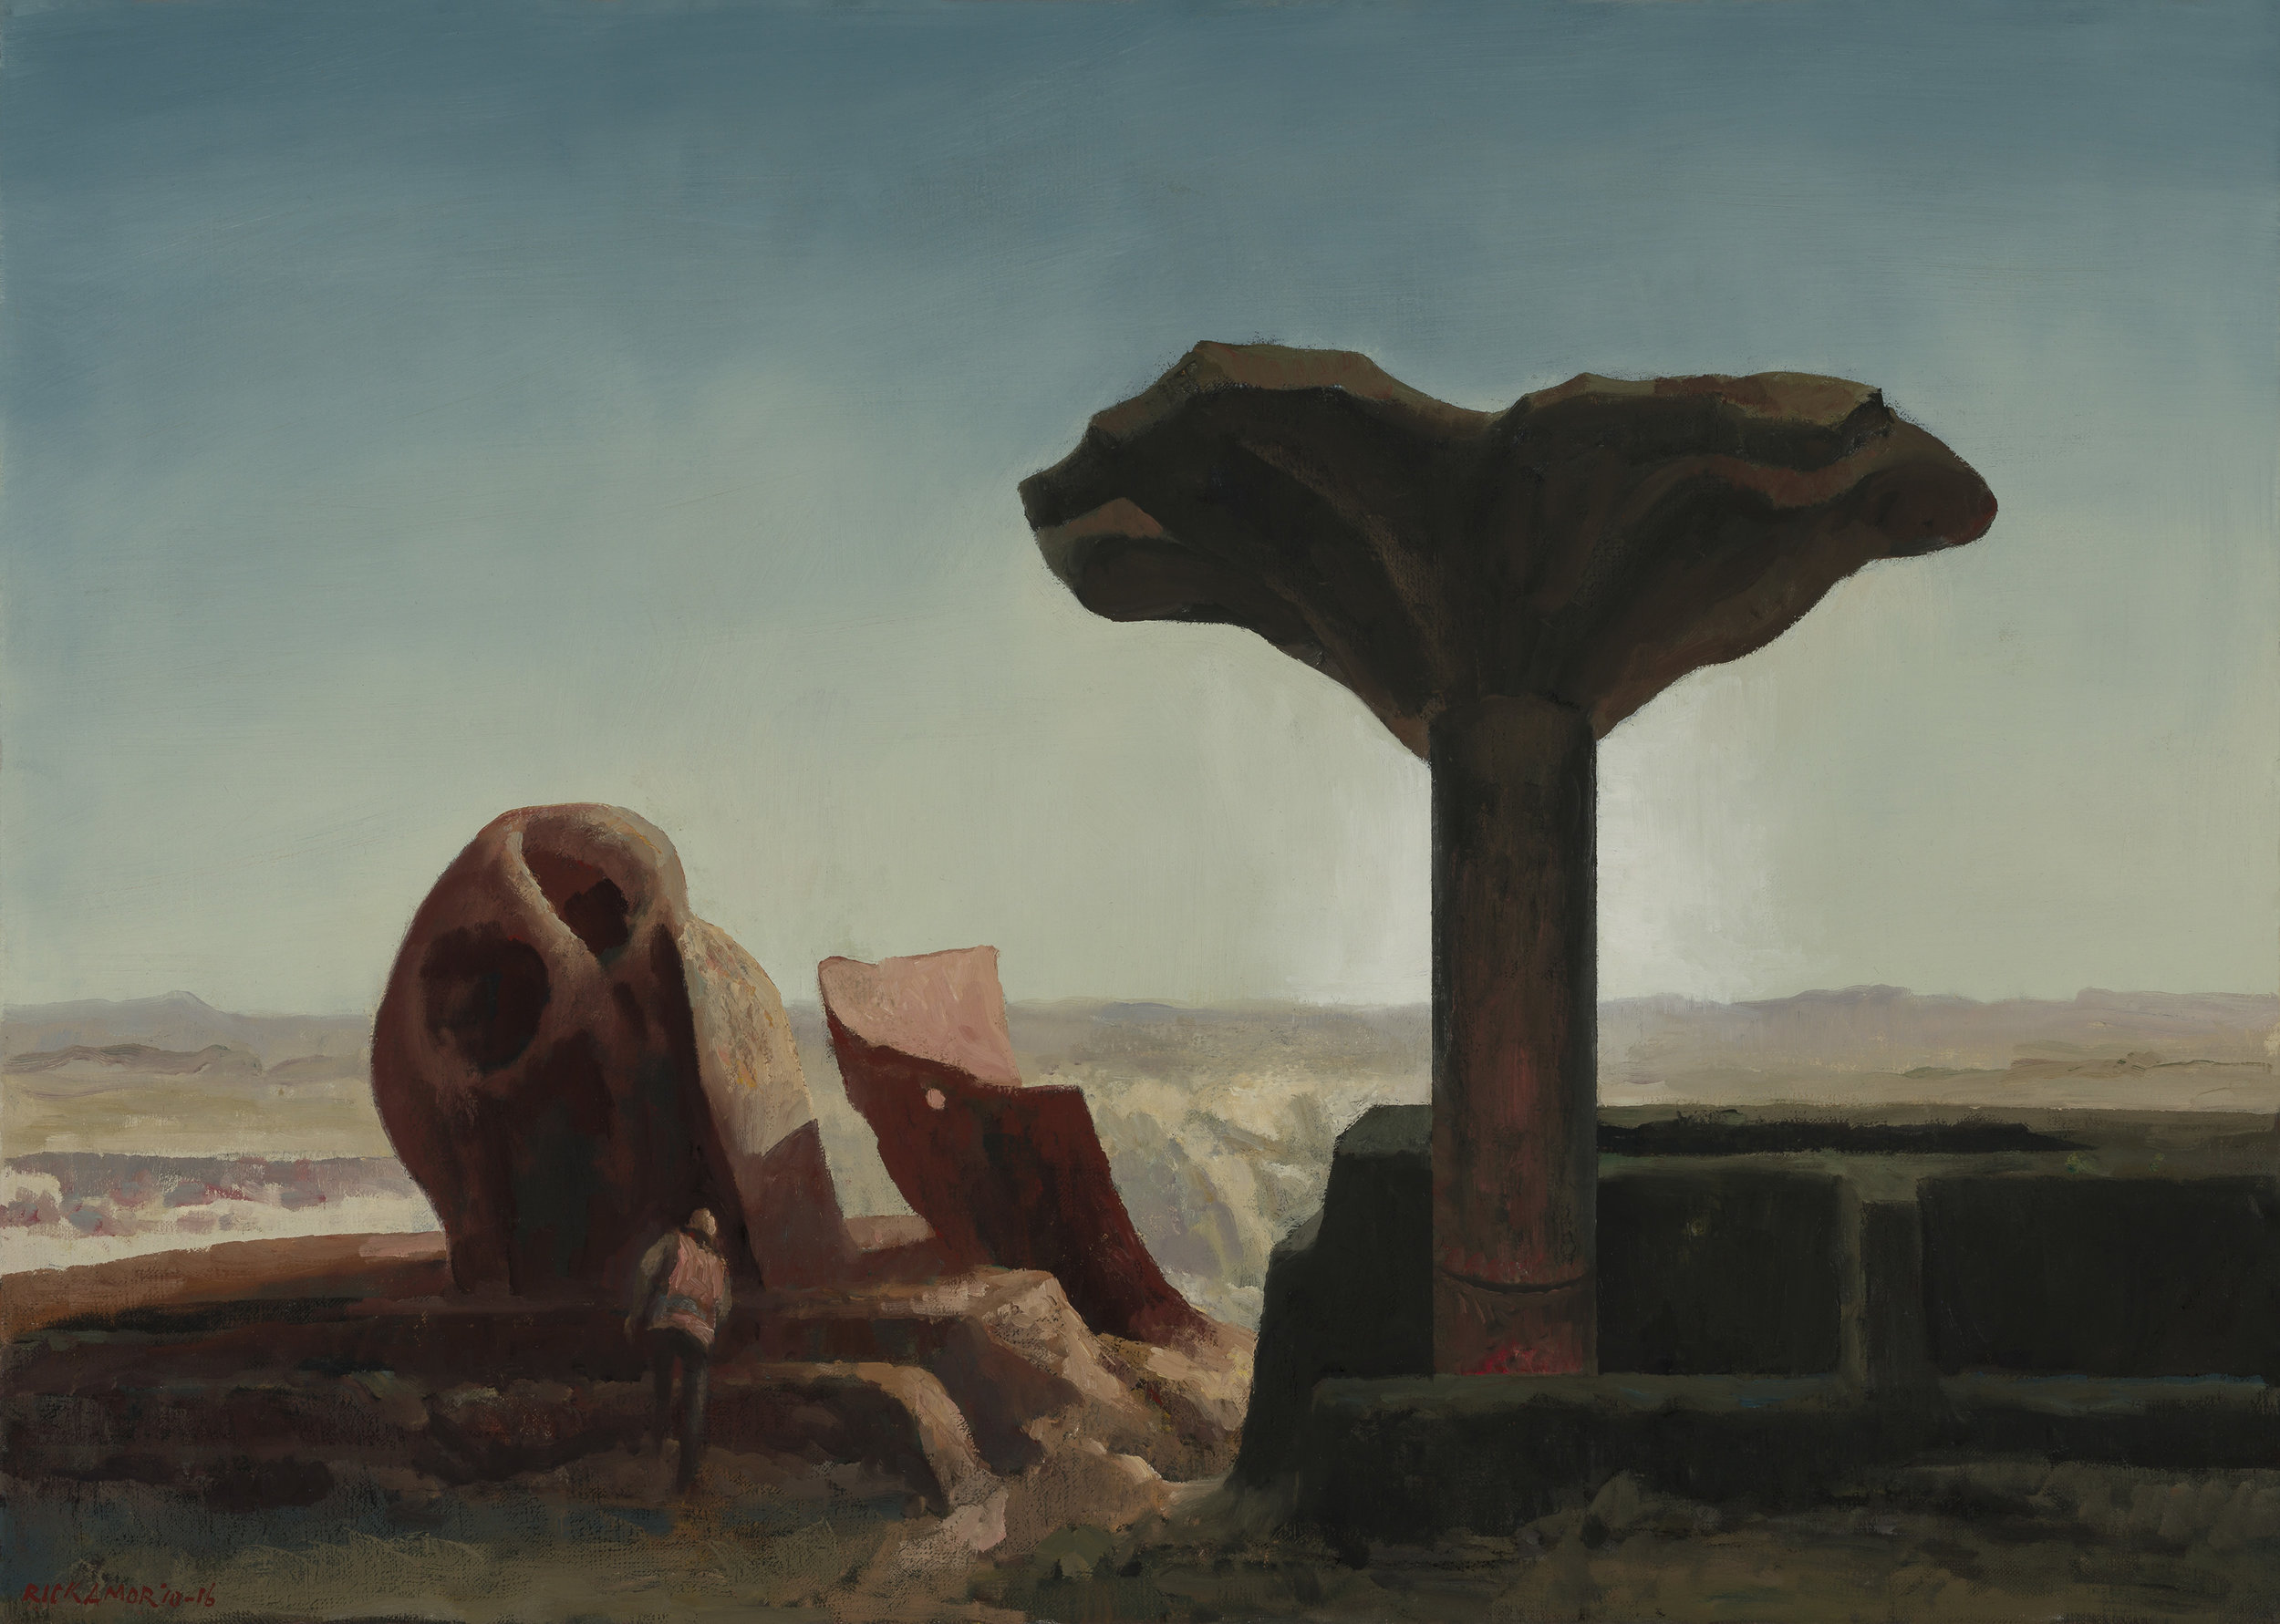 RICK AMOR   Stay for the iron tree , 2010-2016  oil on canvas  65.5 x 92 cm